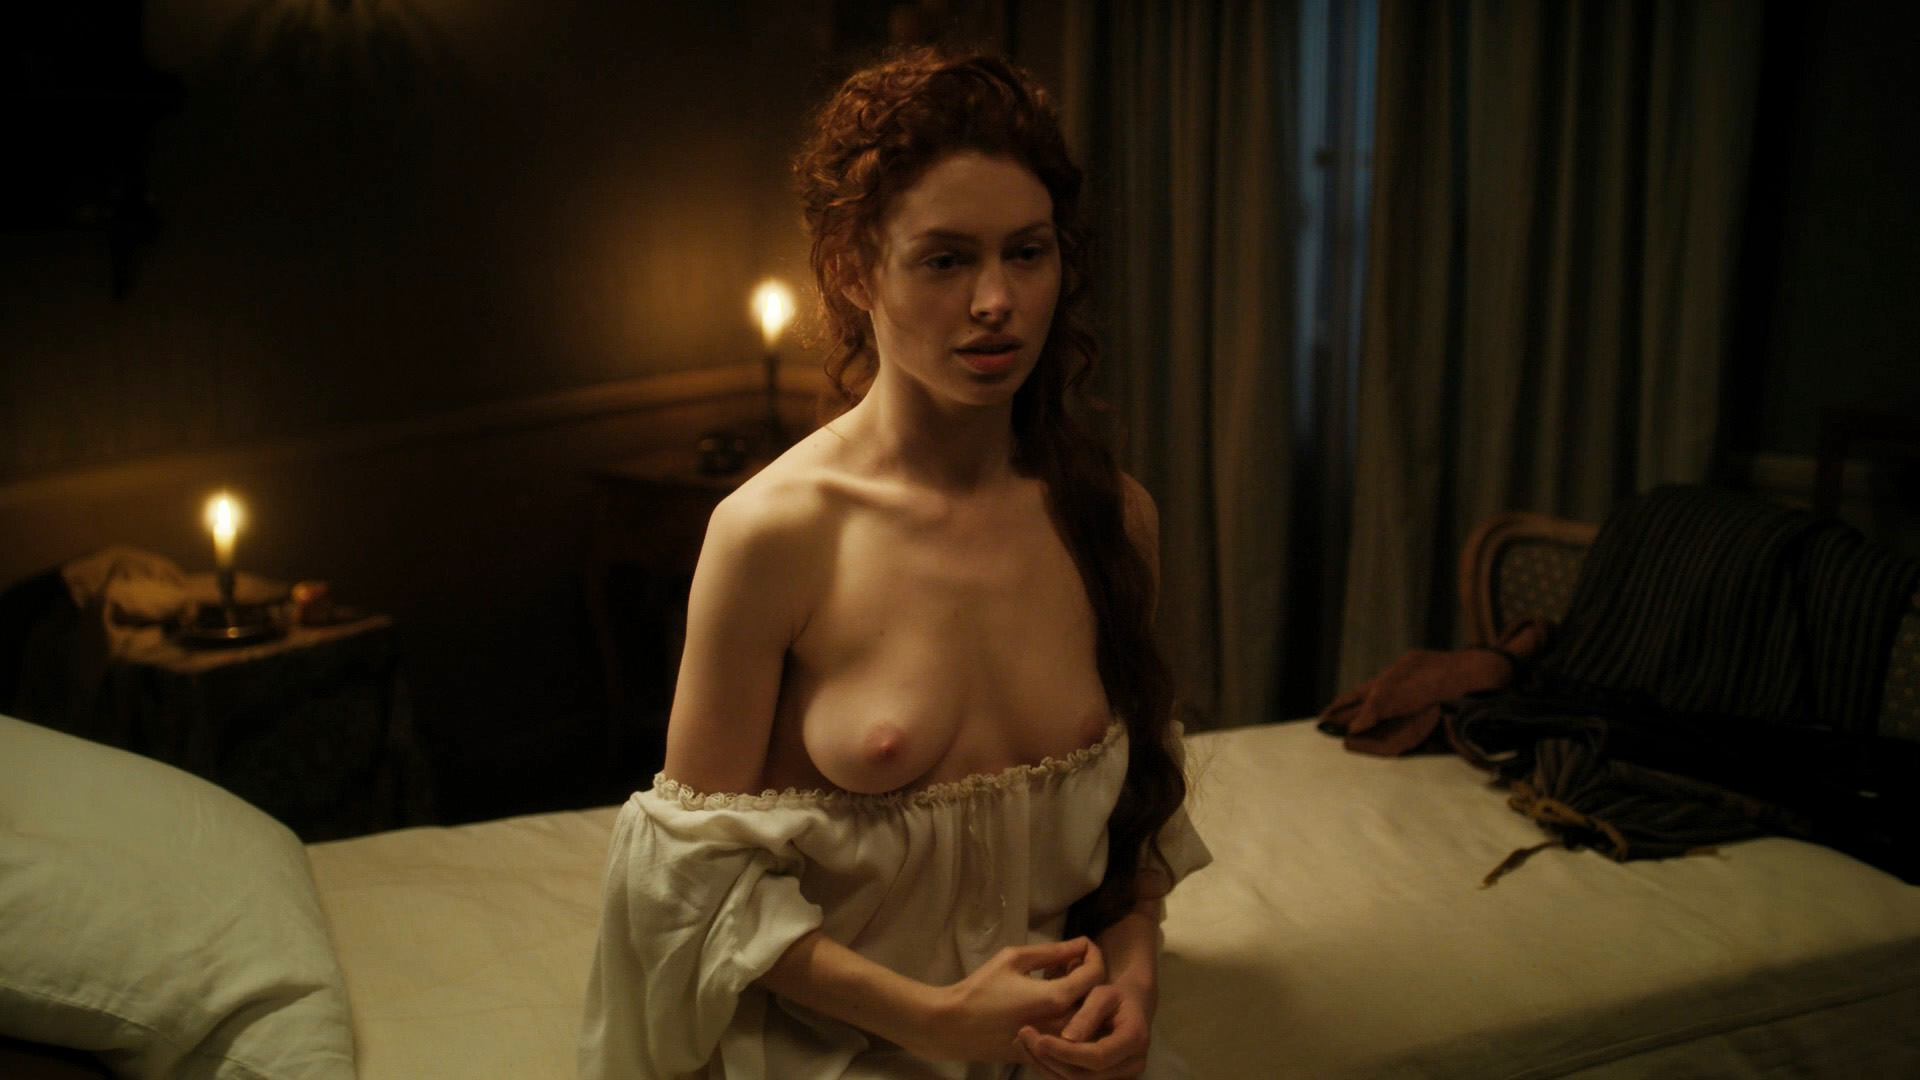 Sarah Winter, etc – Casanova s01e01 (2015) HD 1080p